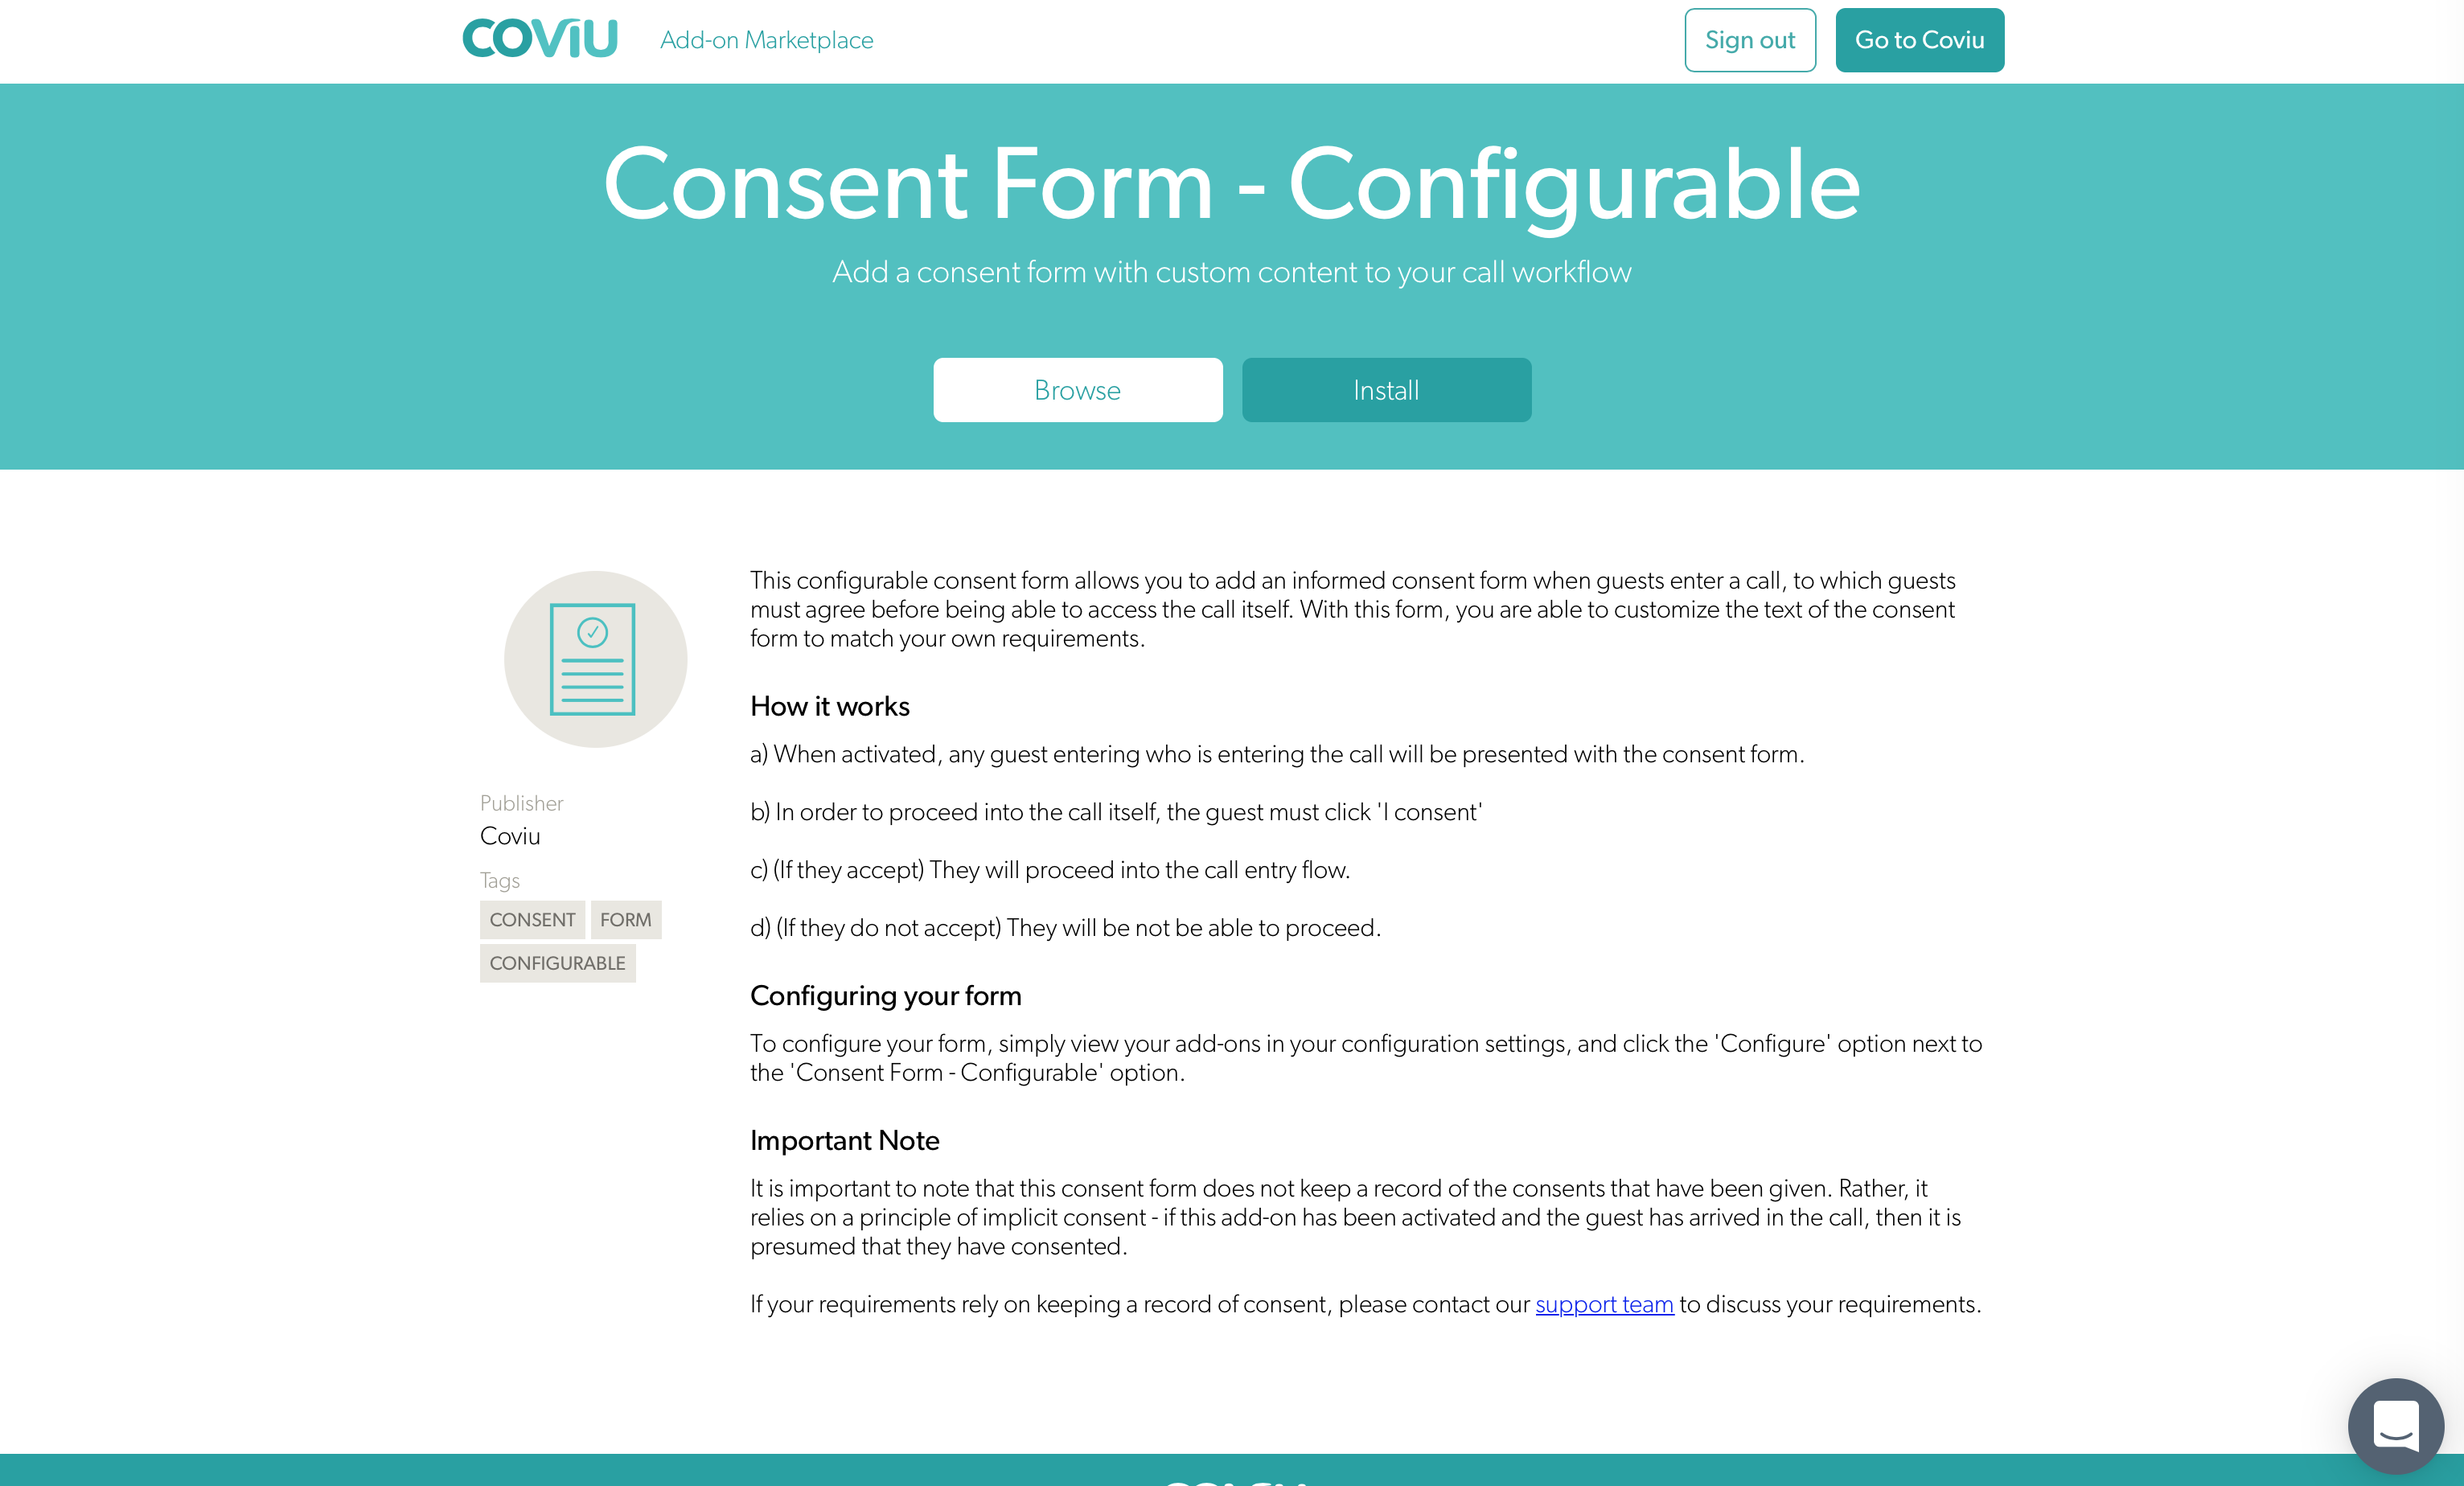 Consent for configuration